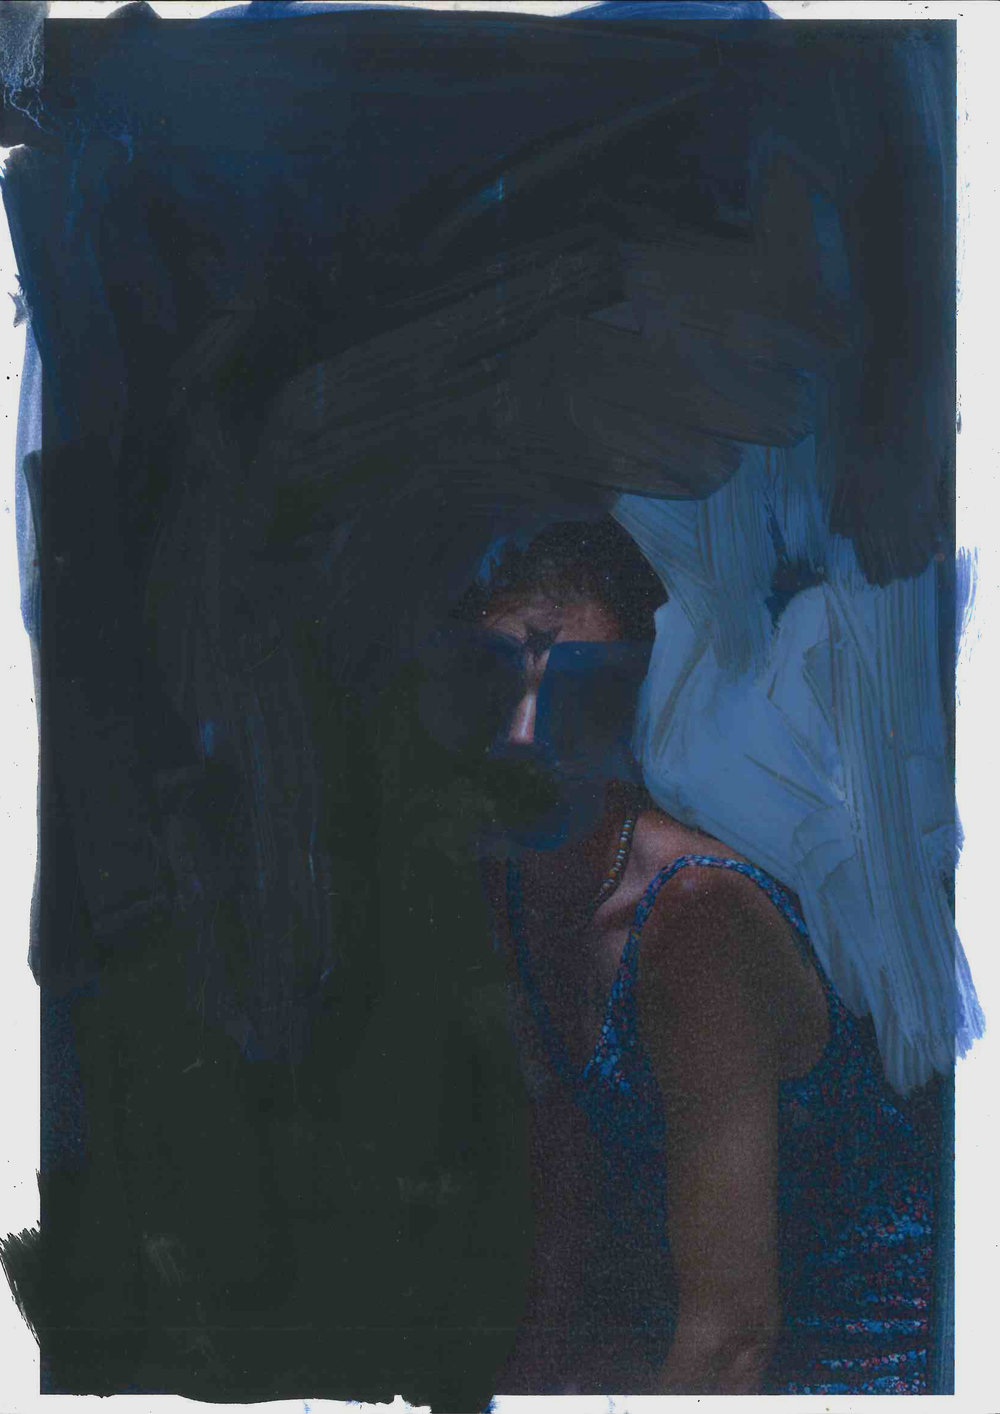 Study For False Anima 1:2, oil on paper with photographic element